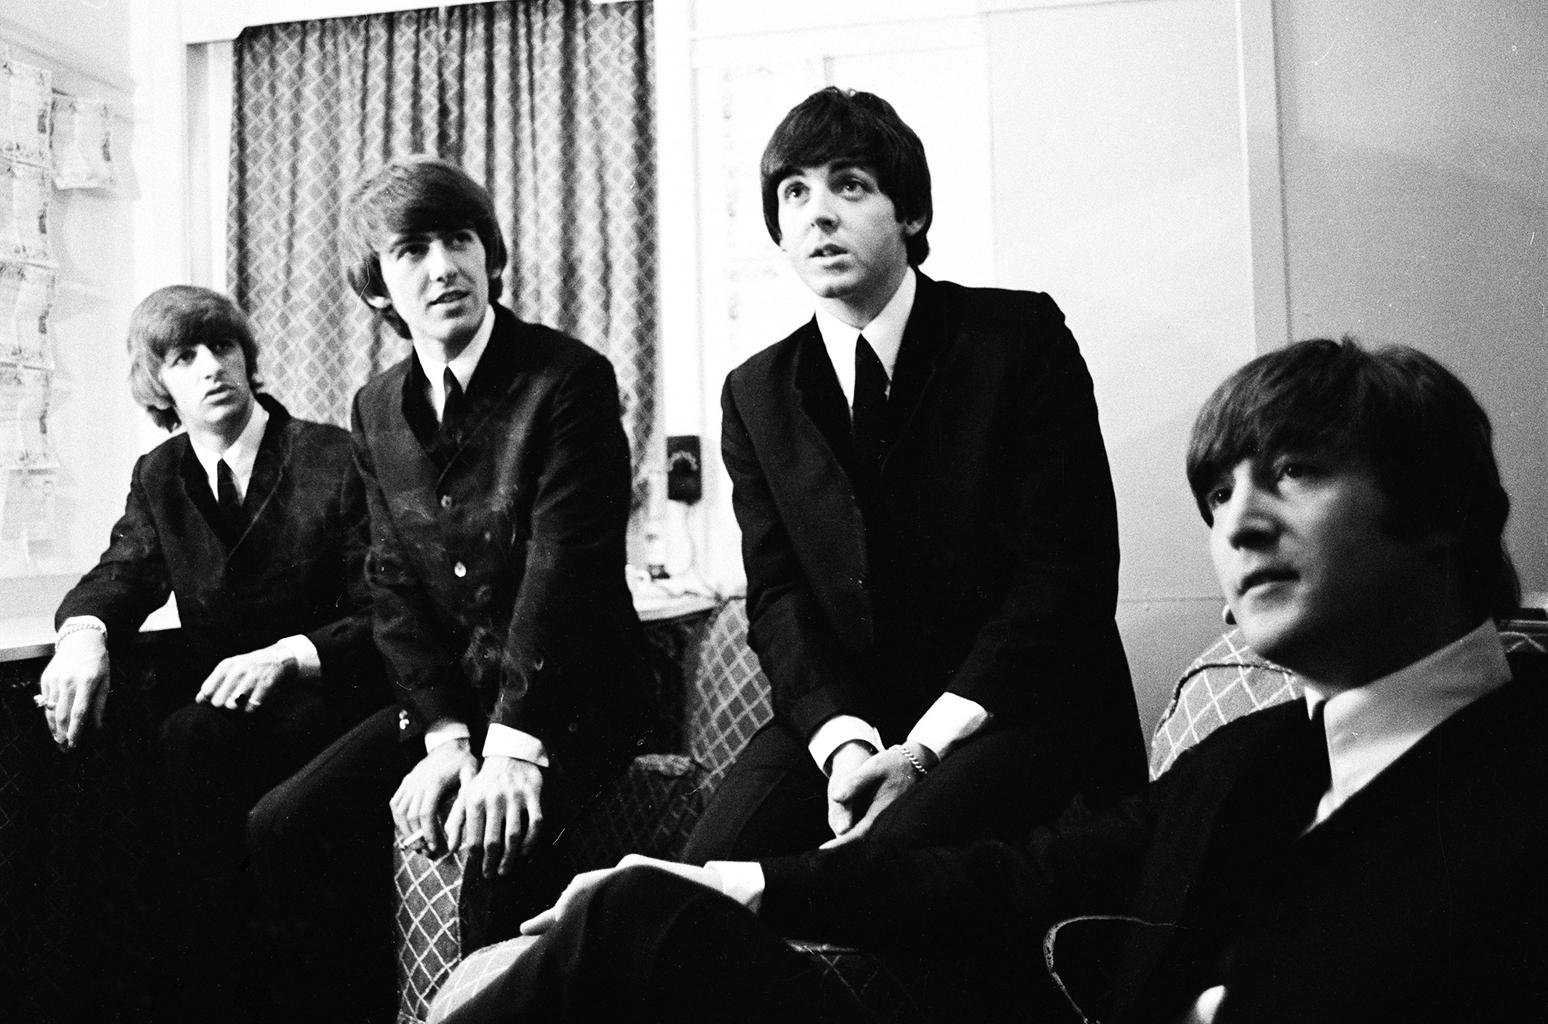 1548x1024 > The Beatles Wallpapers